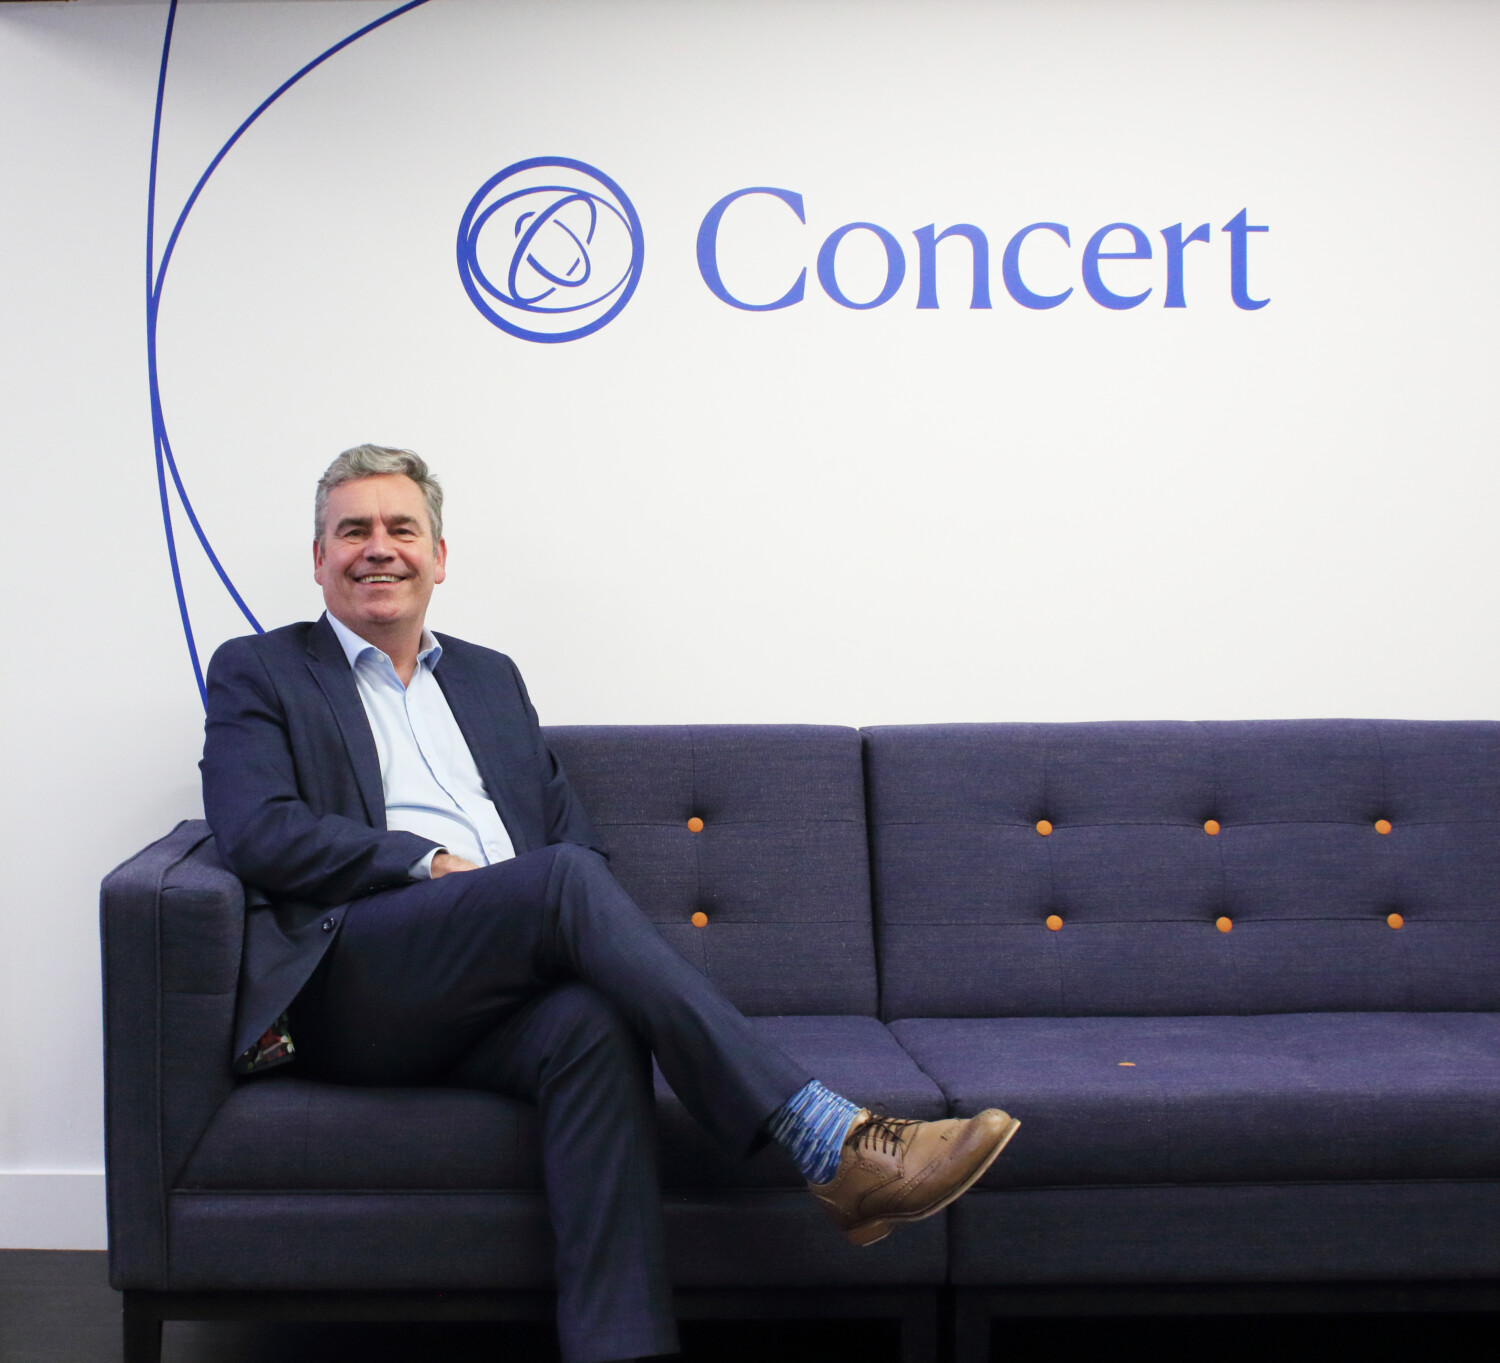 Concert announces new Development Management service, headed up by Fraser Allen